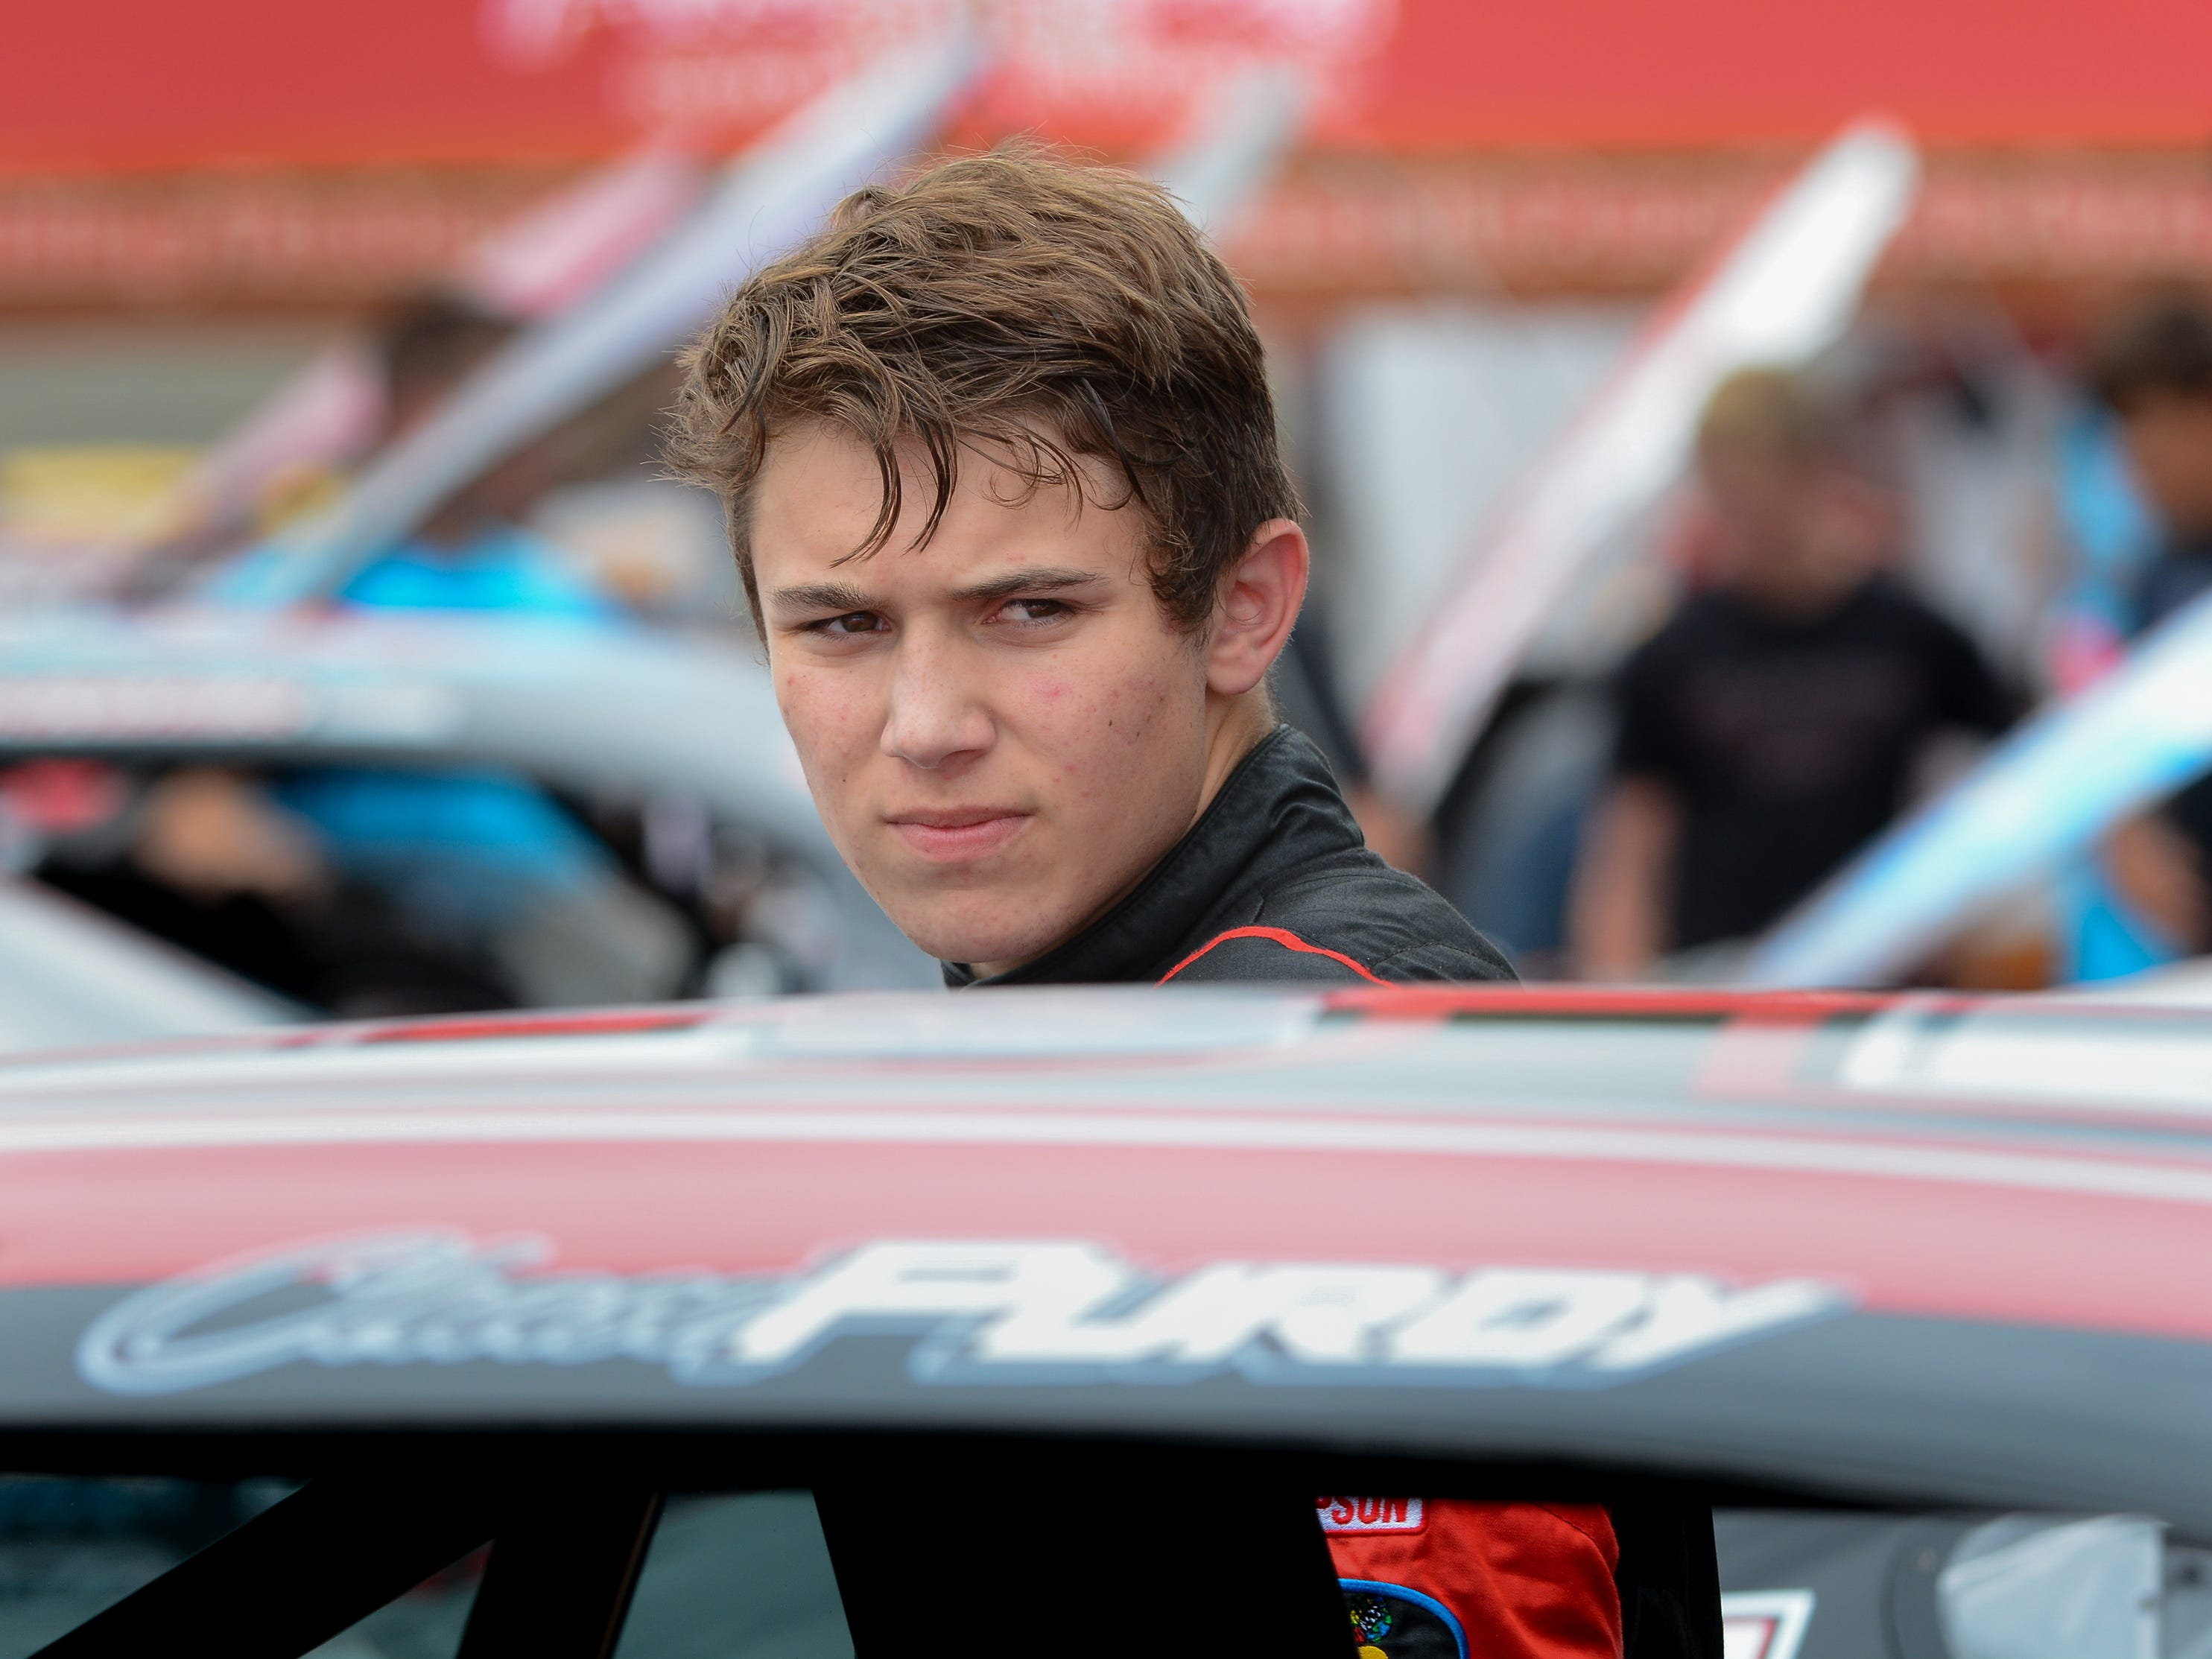 Chase Purdy stands by his car after practice for the ARCA Midwest Tour Dixieland 250 on Tuesday, August 7, 2018, at Wisconsin International Raceway in Kaukauna, Wis.